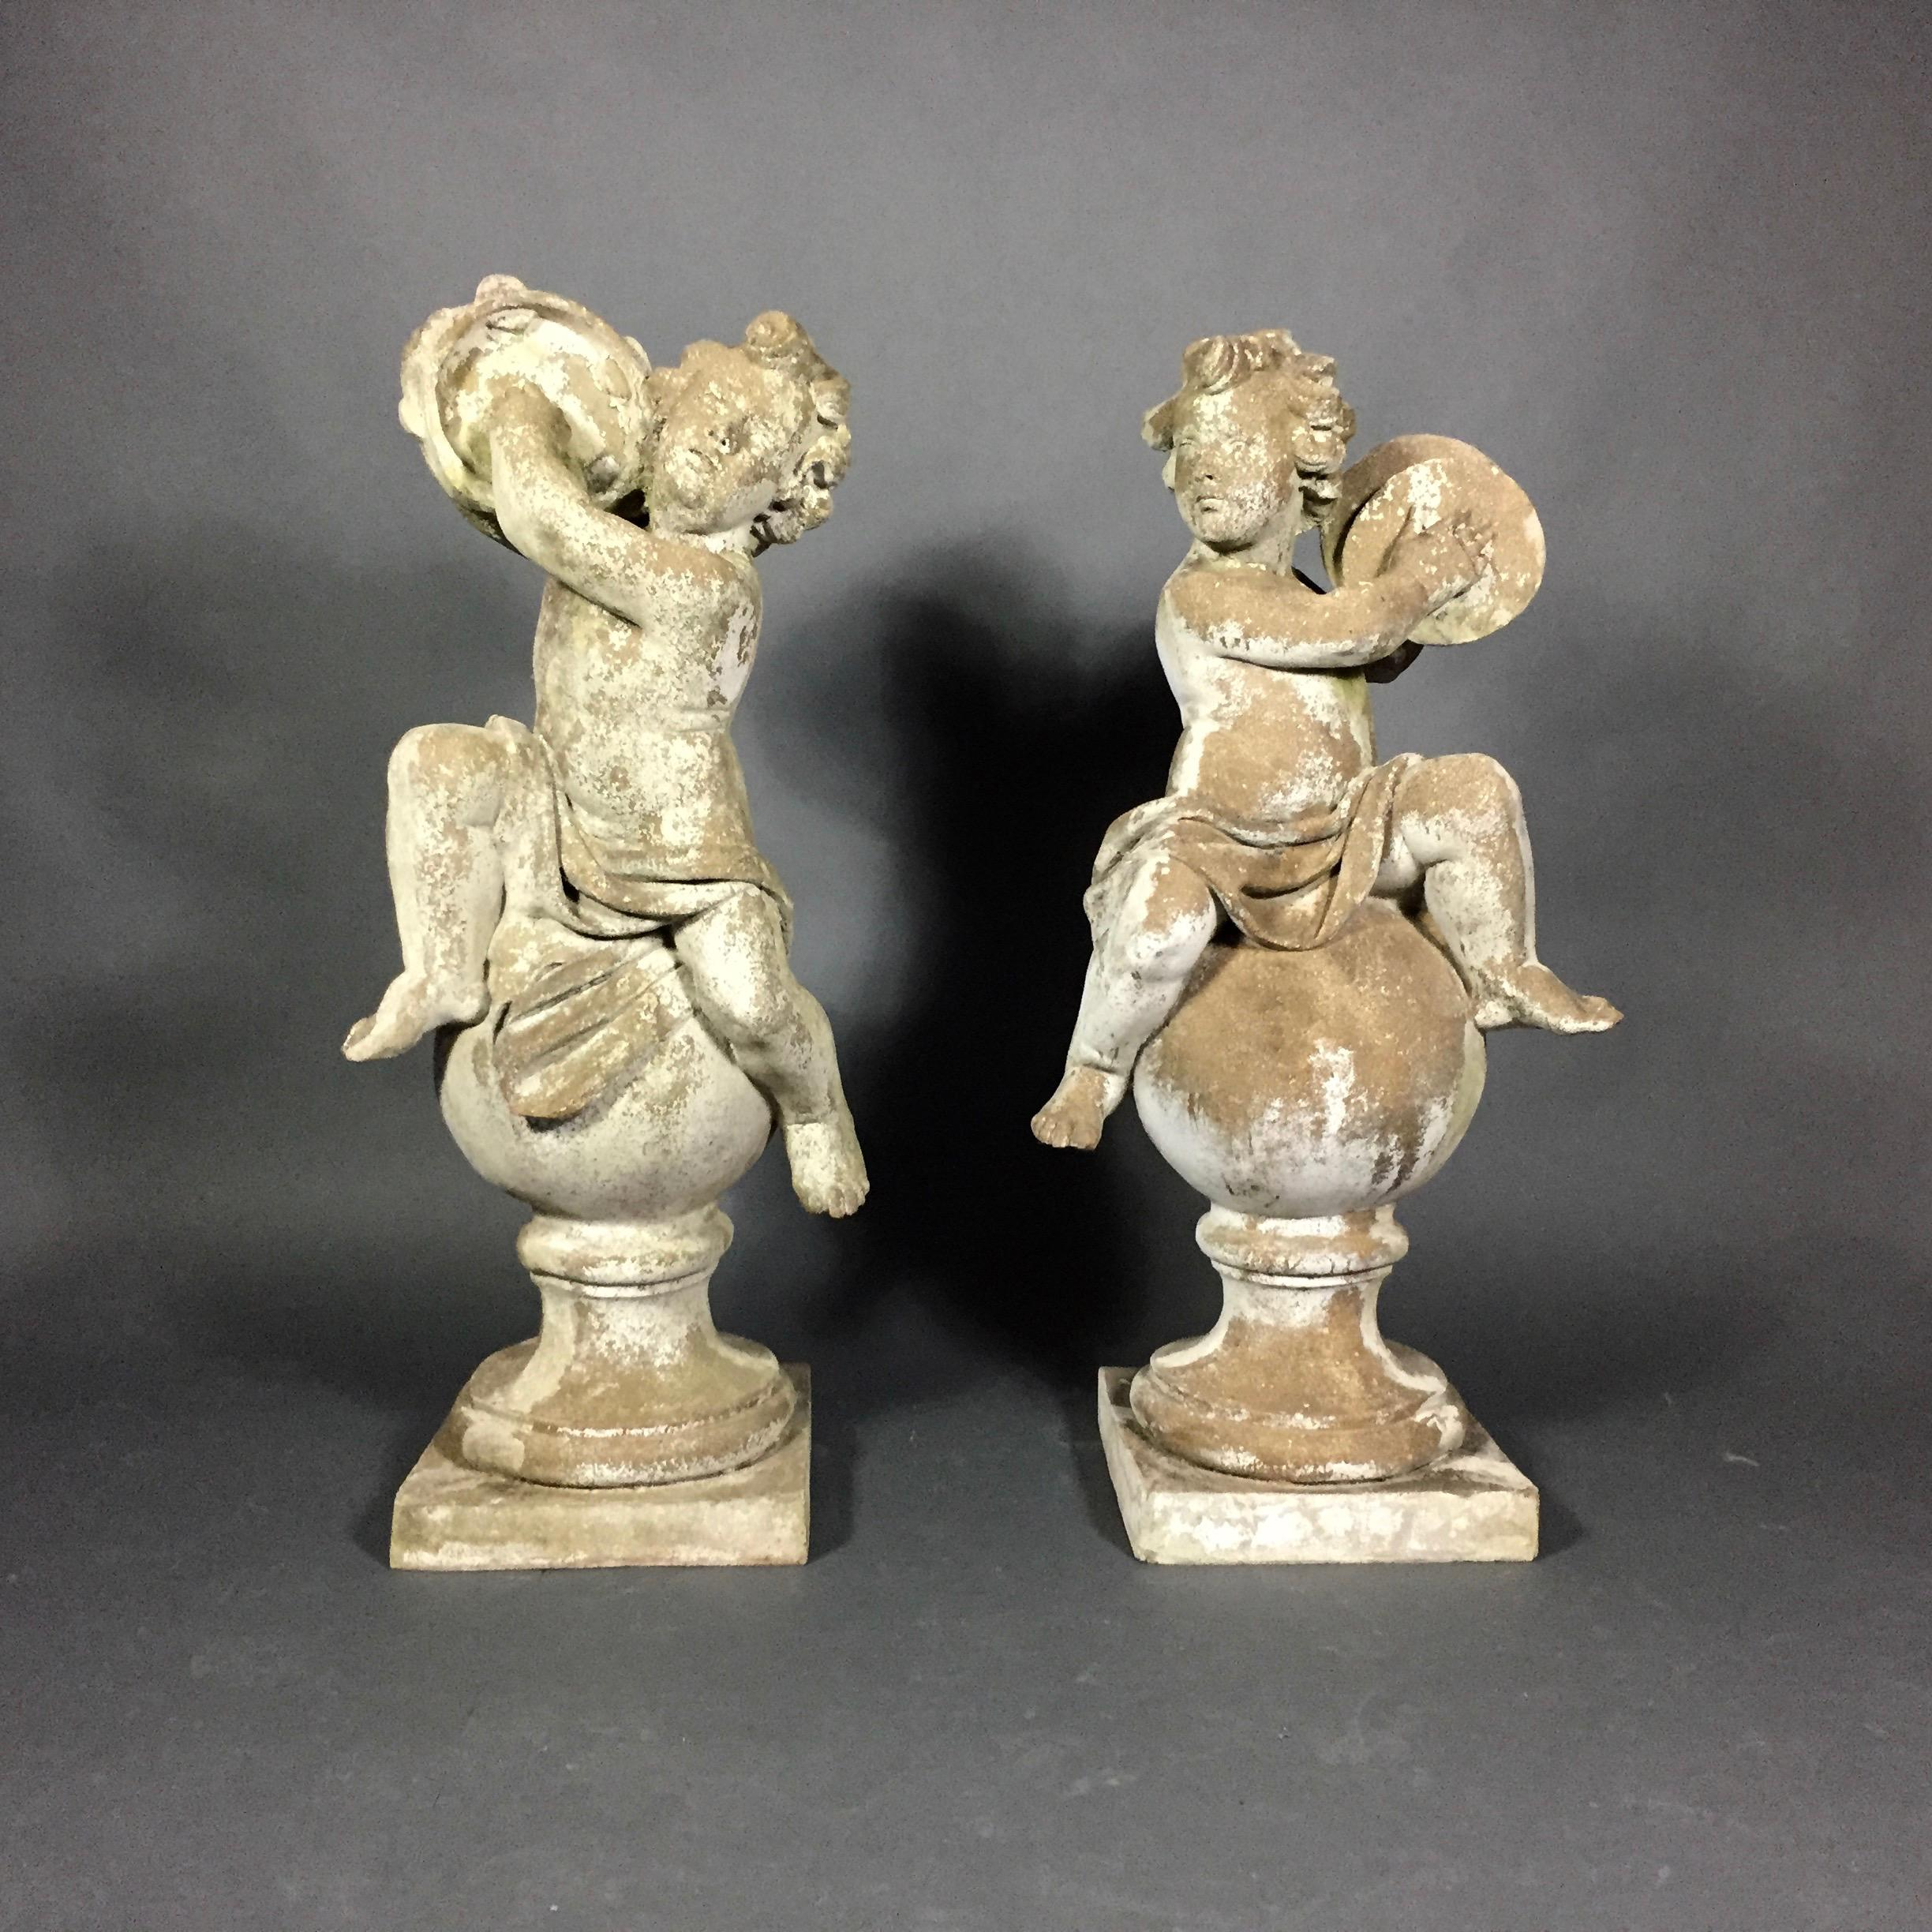 Pair Of Puti Garden Statues, Composite Material, 20th Century For Sale    Image 11